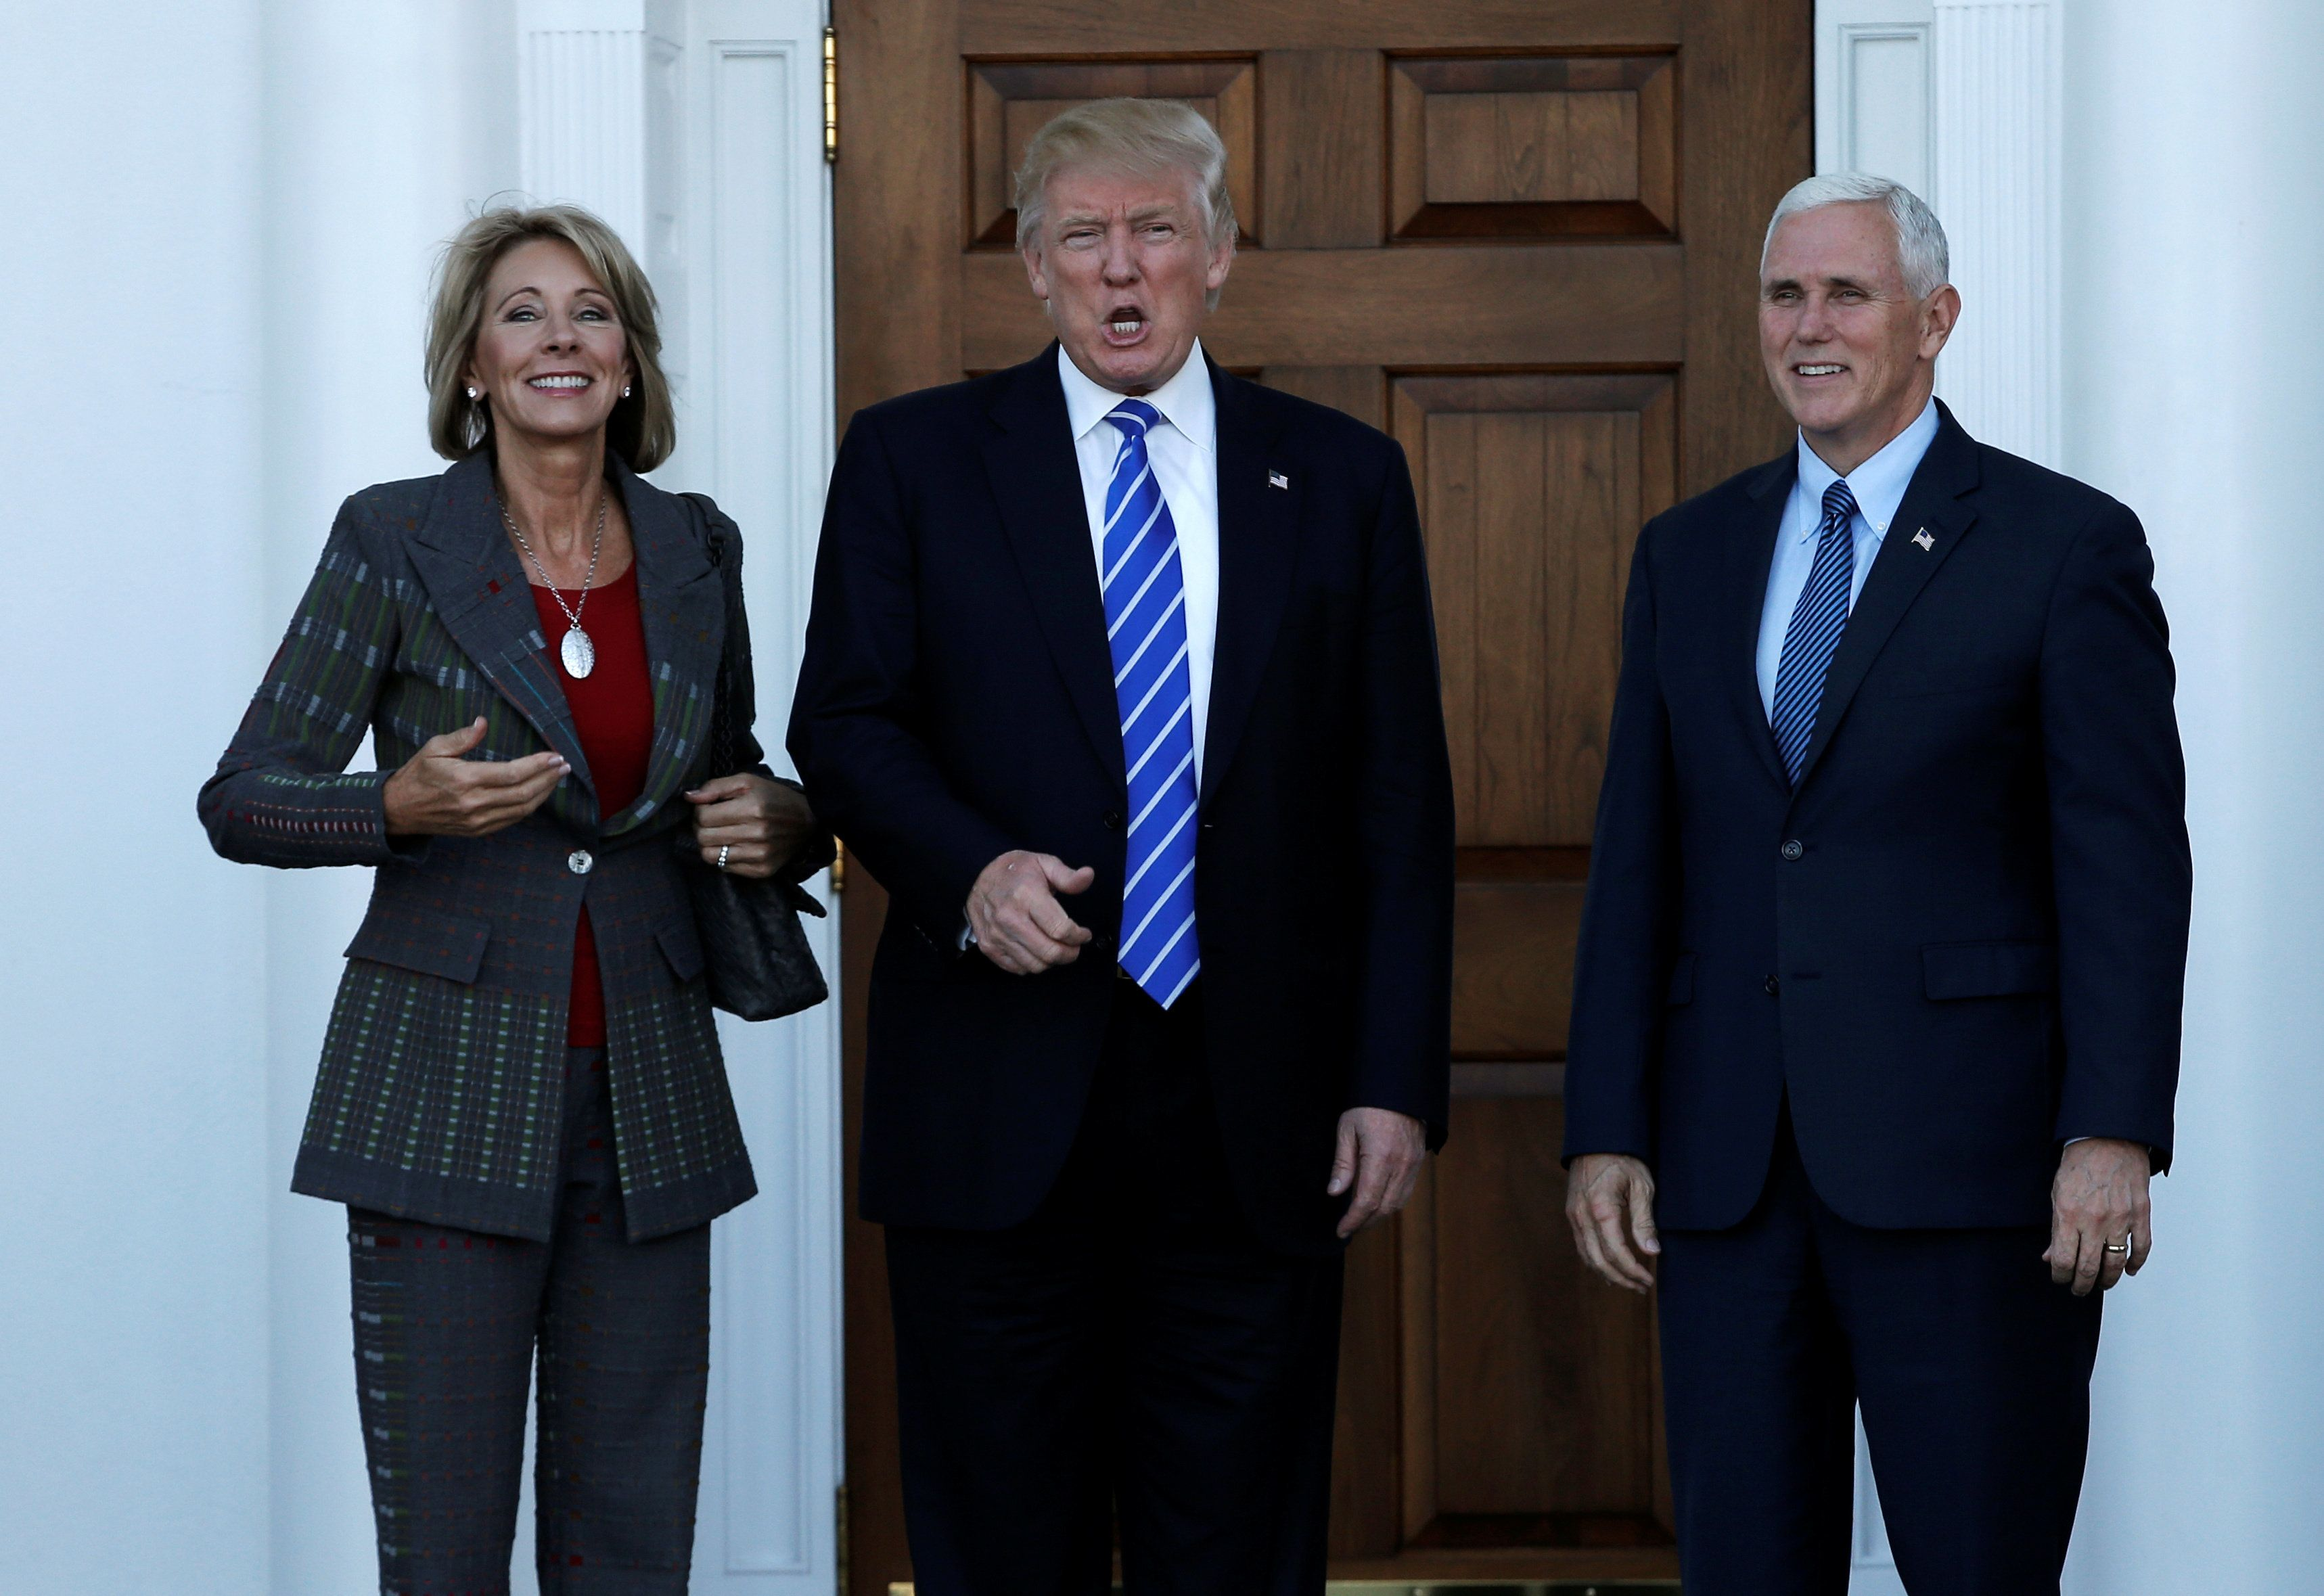 Education Secretary Nominee Betsy DeVos With President Elect Donald Trump  And Vice President Elect